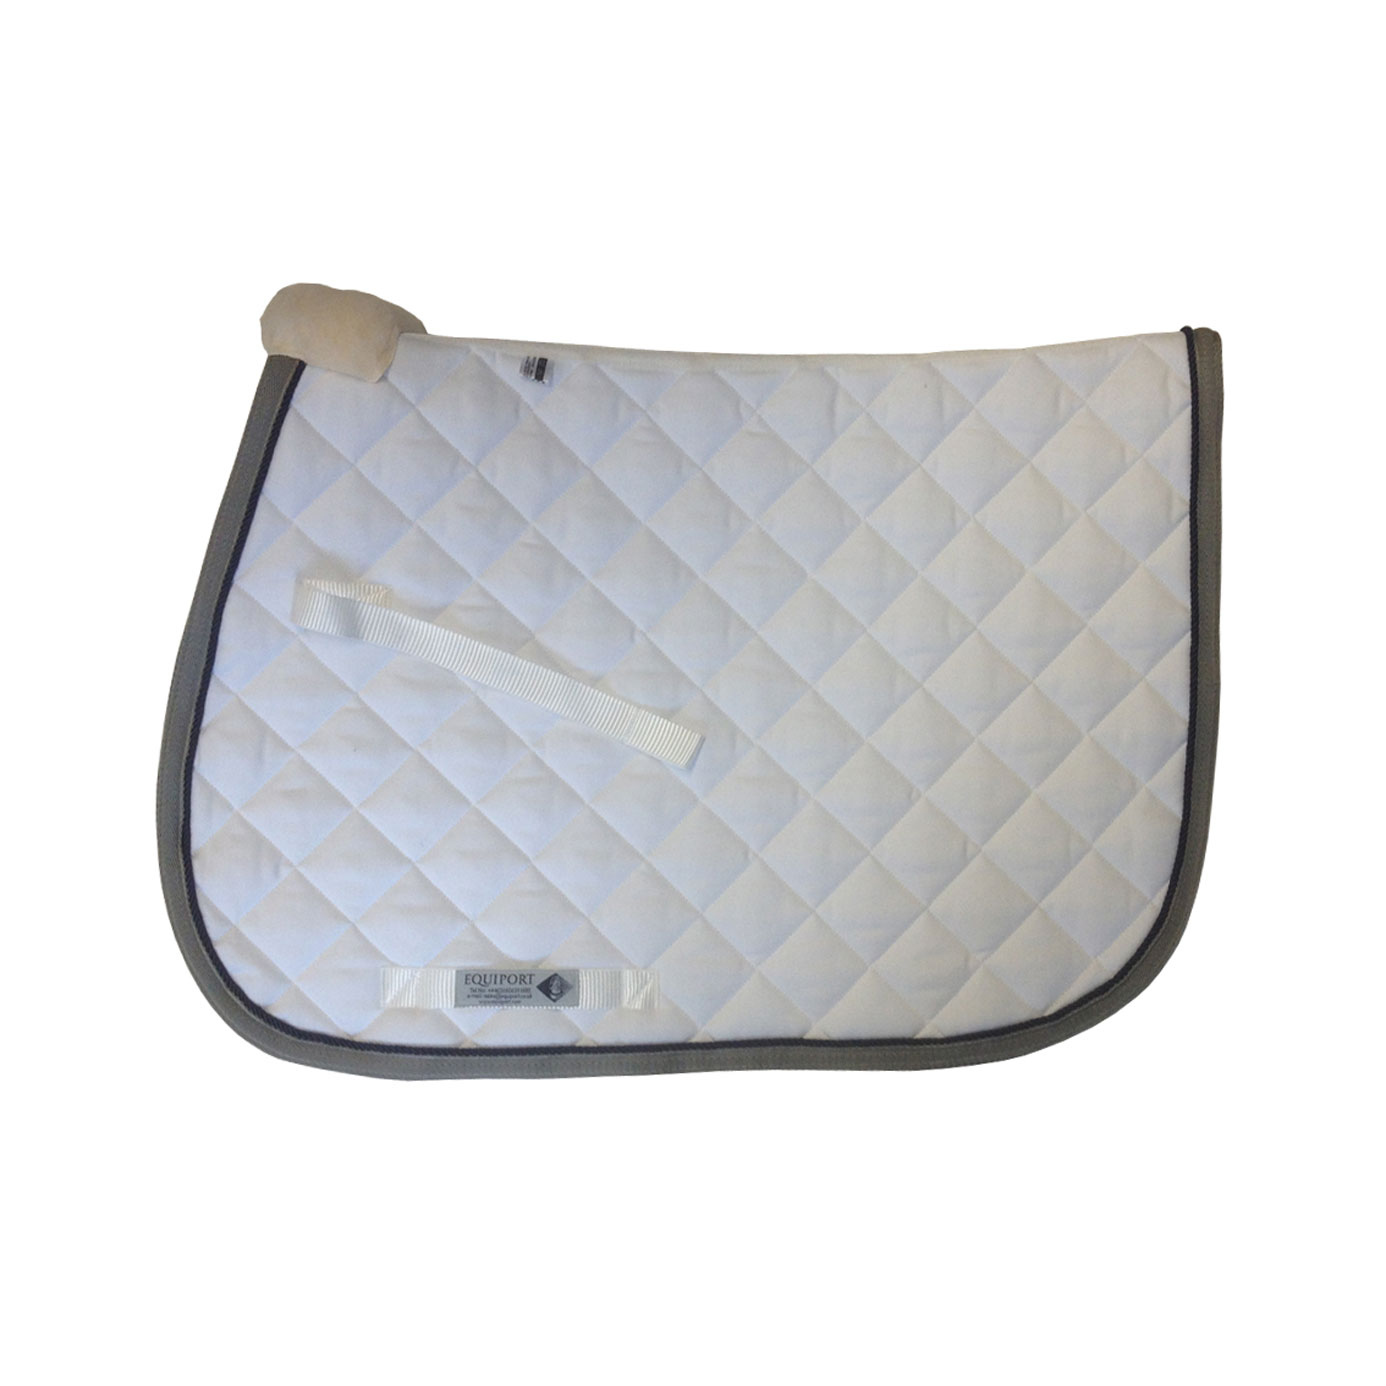 Equiport Bespoke Wide Quilt Jumping Saddle Cloth